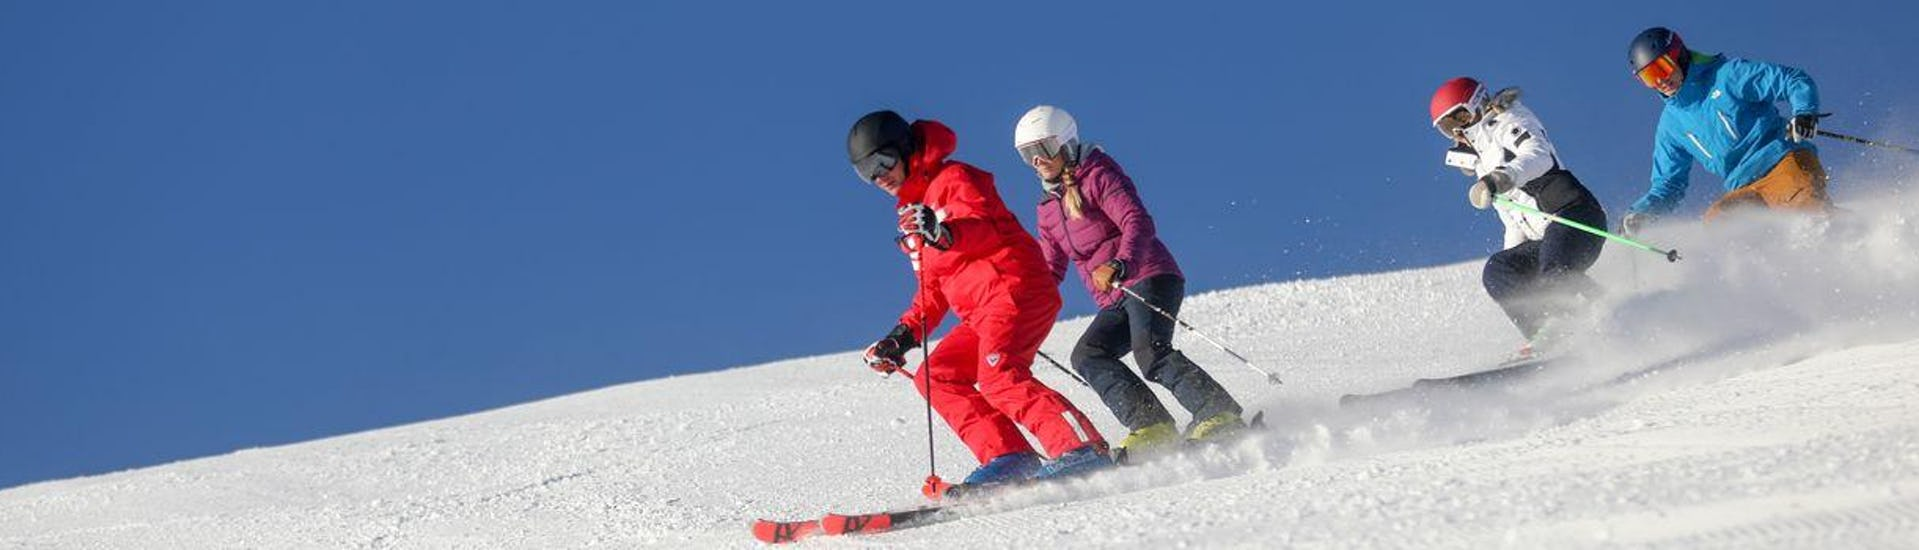 private-ski-lessons-for-adults-all-levels-esf-devoluy-hero